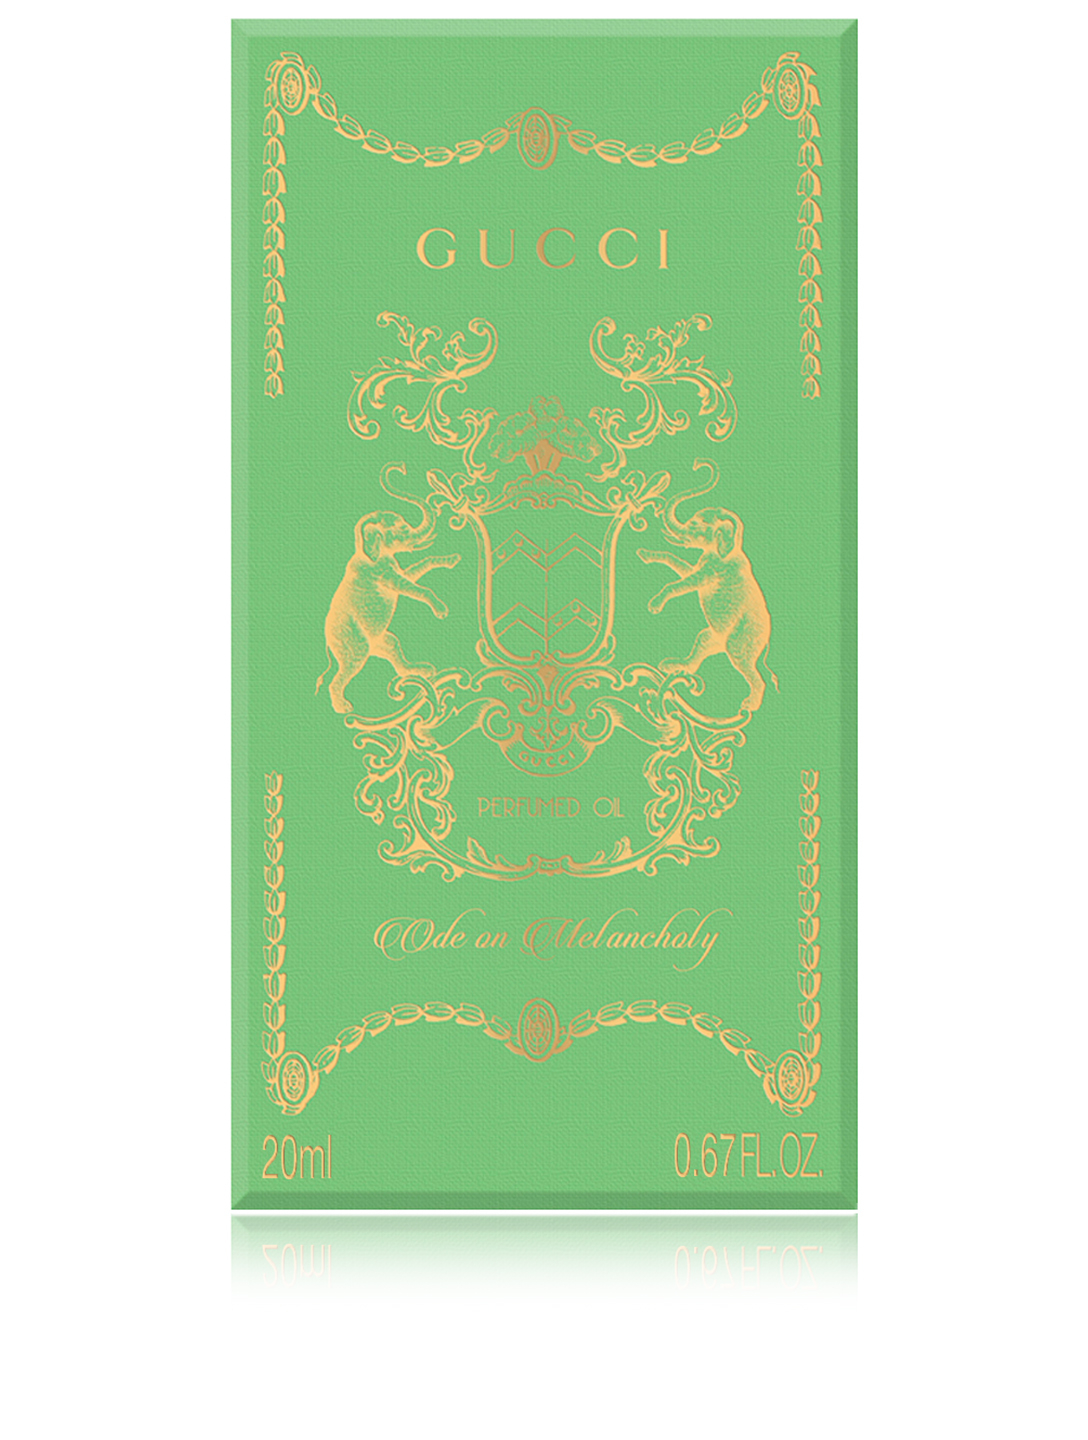 GUCCI Huile parfumée Ode on Melancholy, collection The Alchemist's Garden Beauté